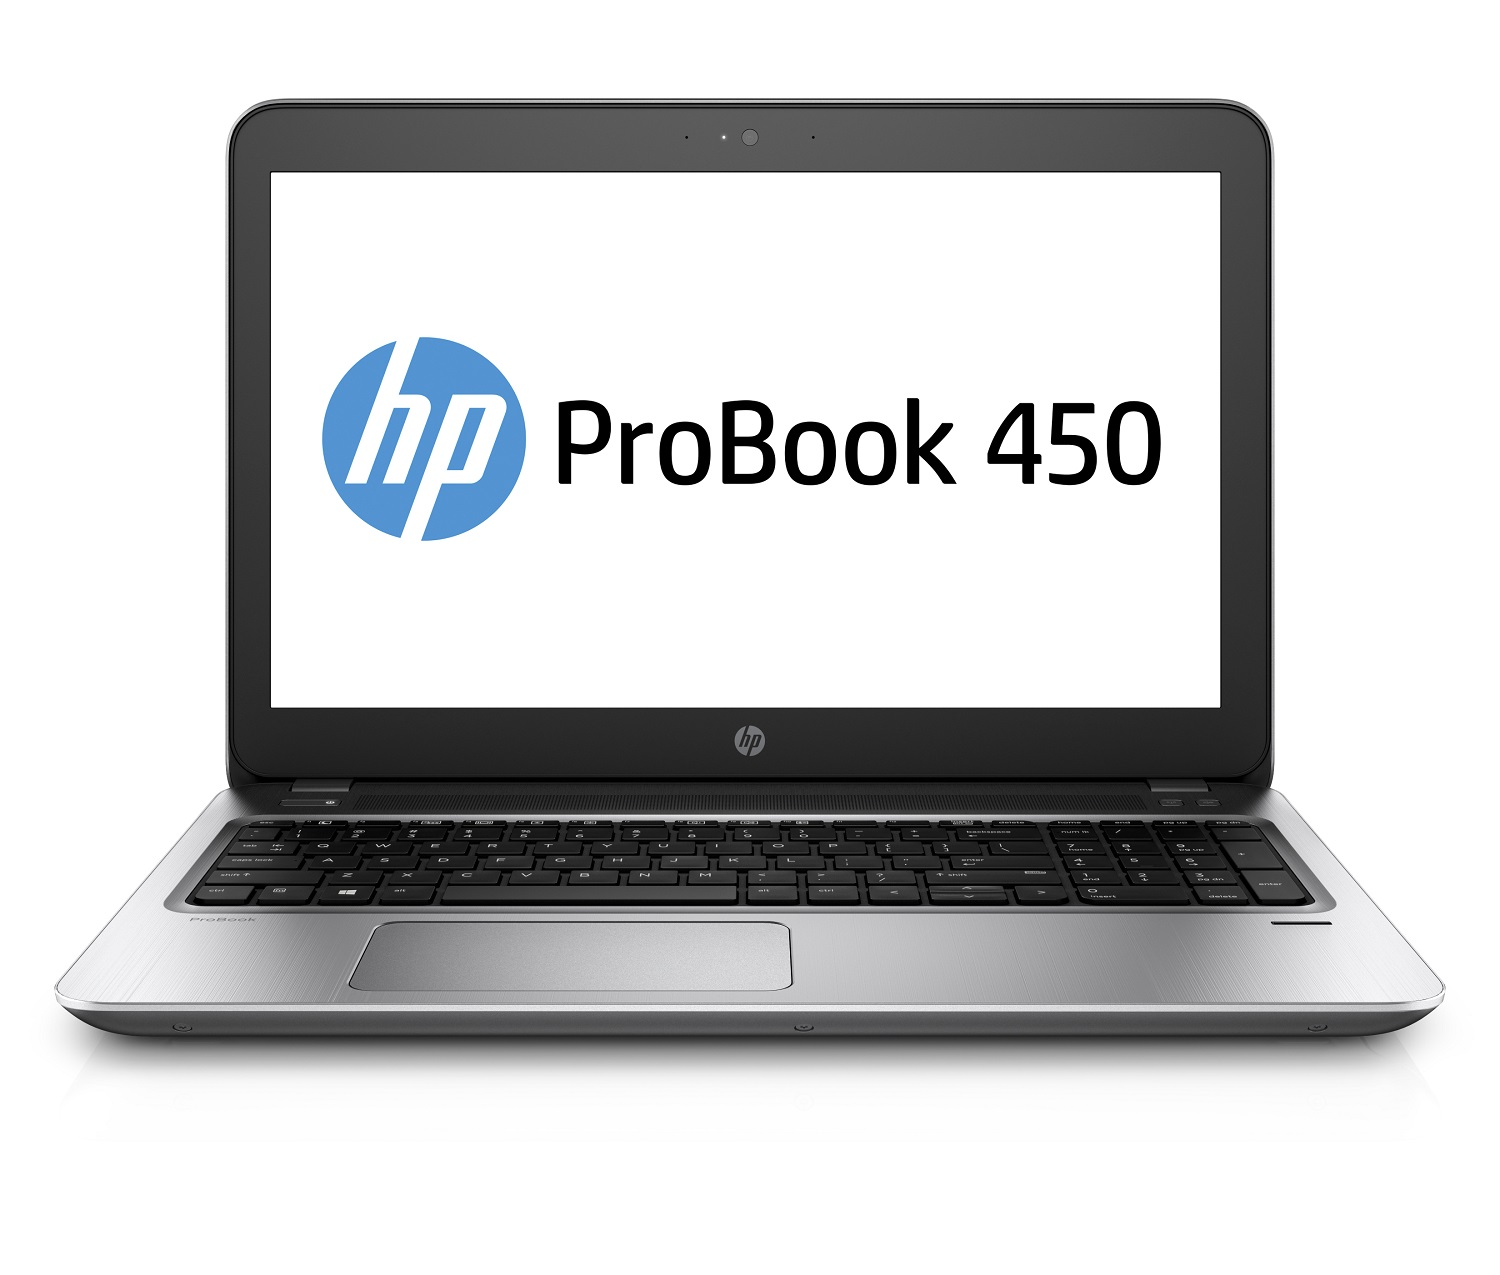 HP ProBook 450 G4 i3-7100U / 4GB / 1TB / 15,6'' FHD / Win 10